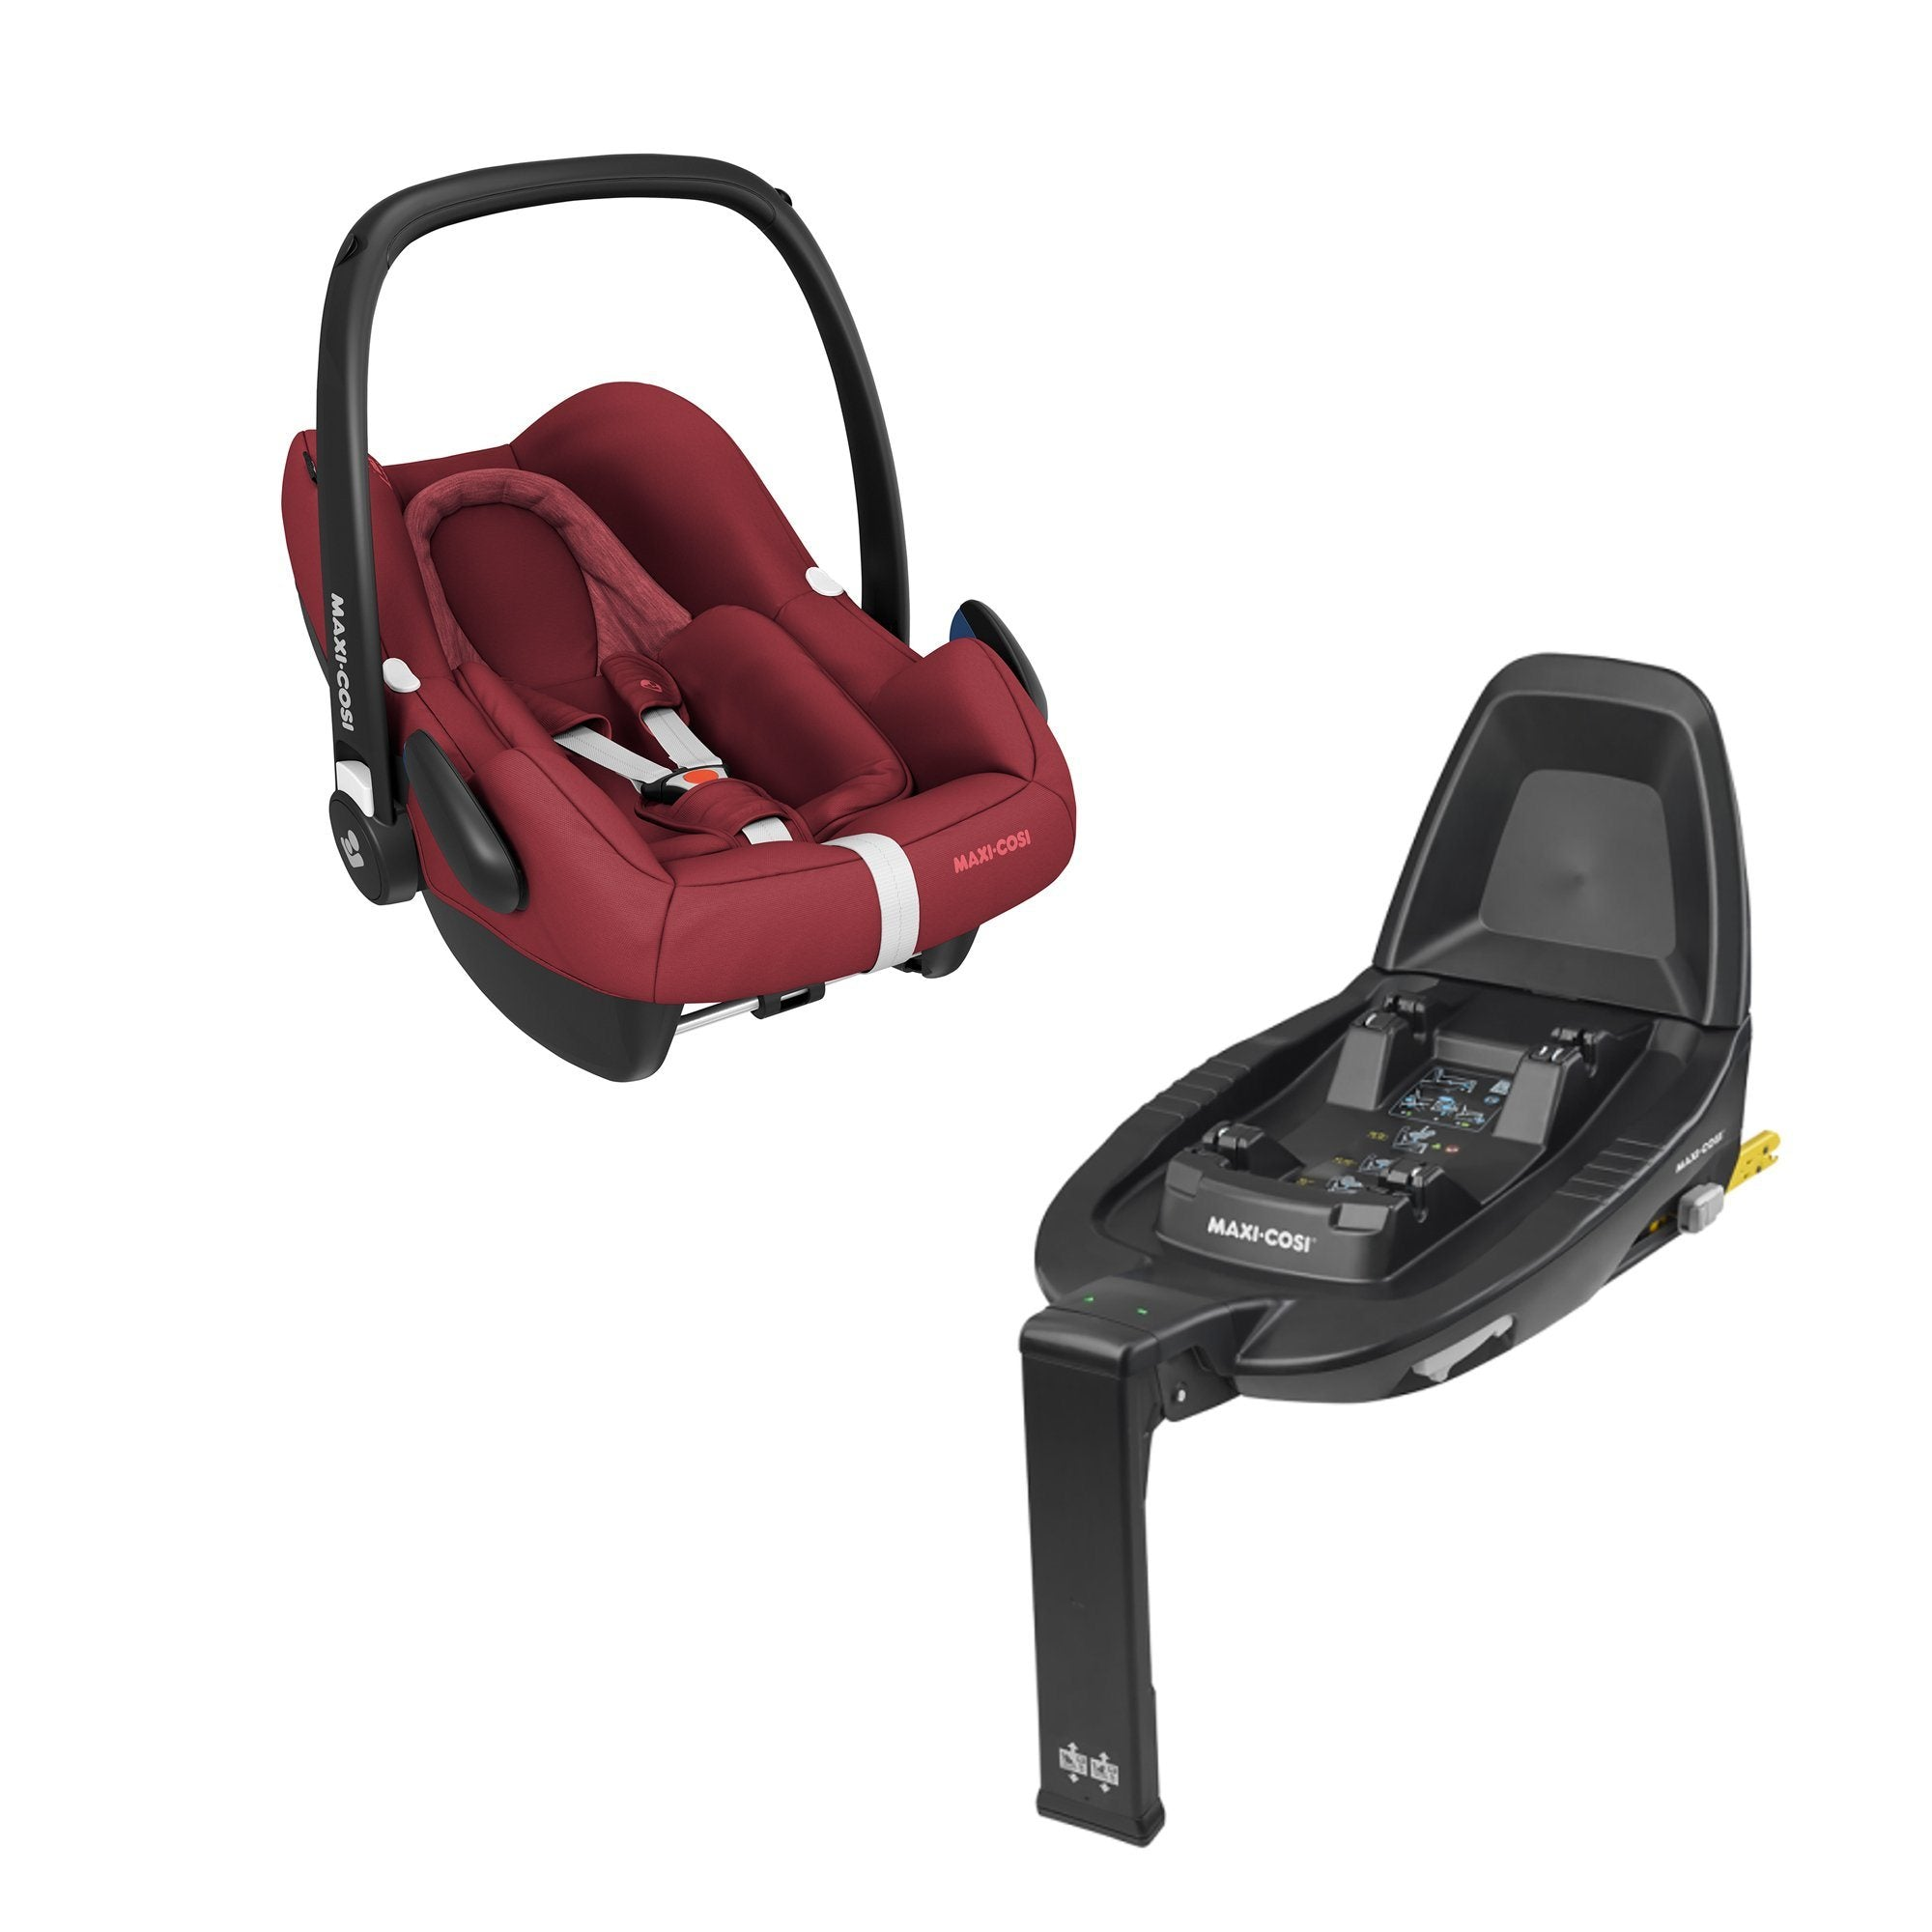 Maxi-Cosi Rock i-Size infant car seat and FamilyFix2 base - Essential Red